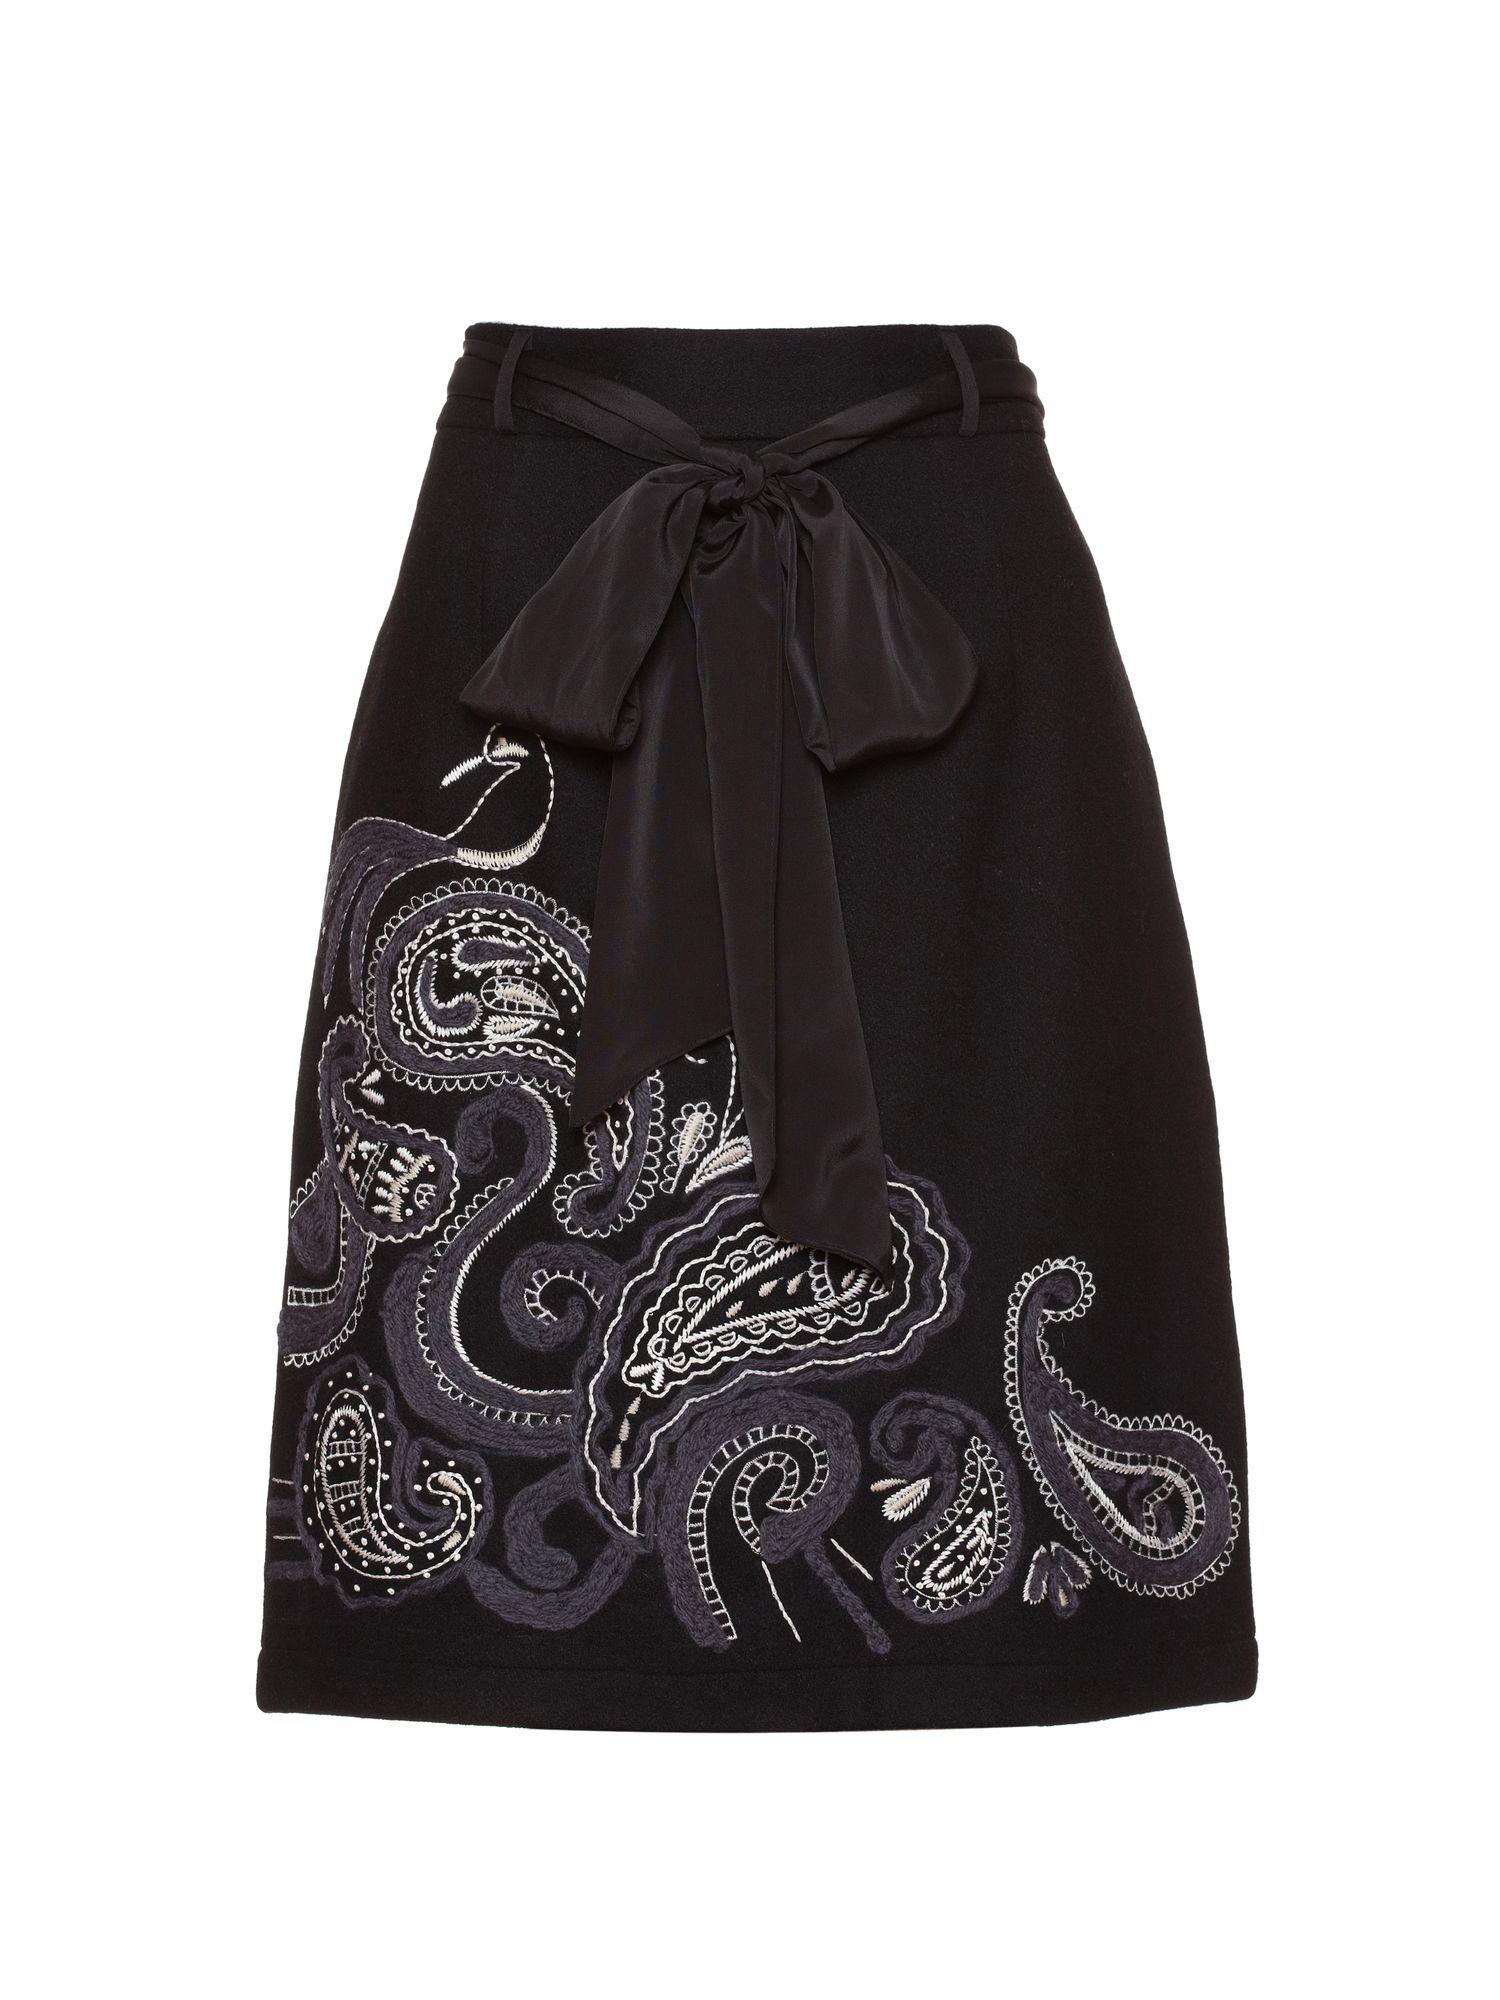 Paisley wool skirt.